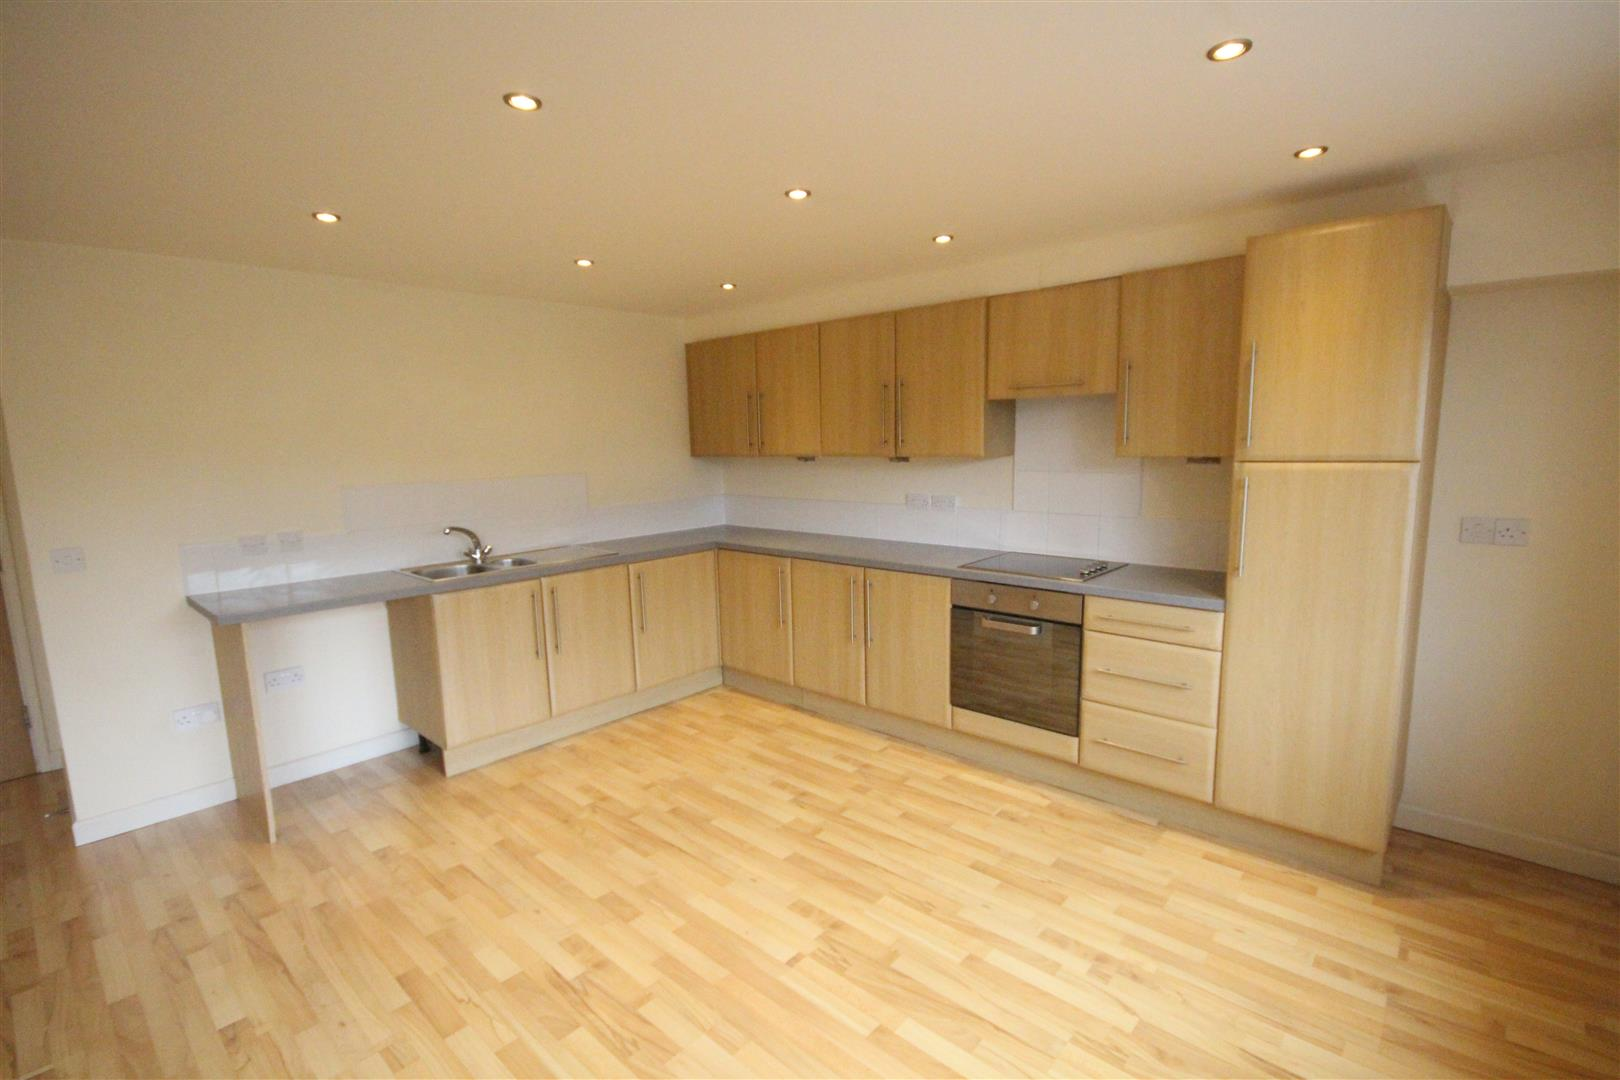 2 bedroom apartment For Sale in Colne - IMG_3439.jpg